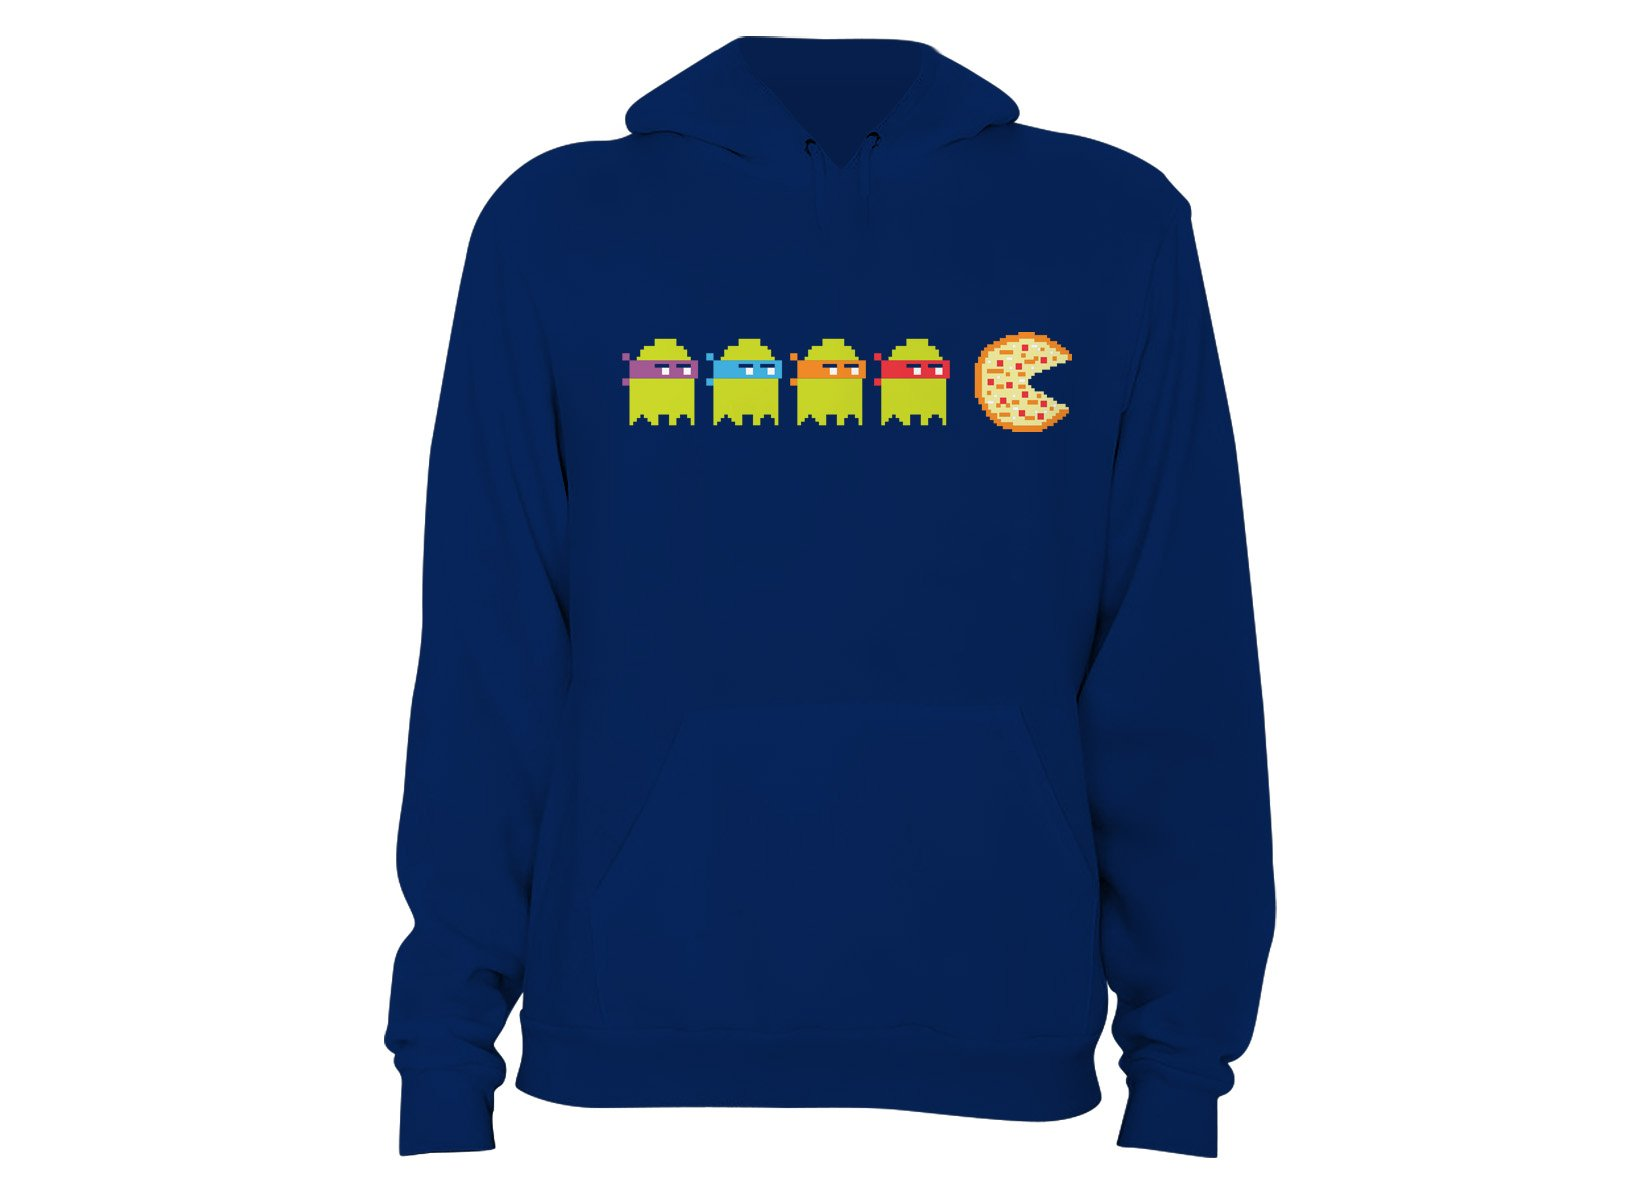 Teenage Mutant Ninja Ghosts on Hoodie